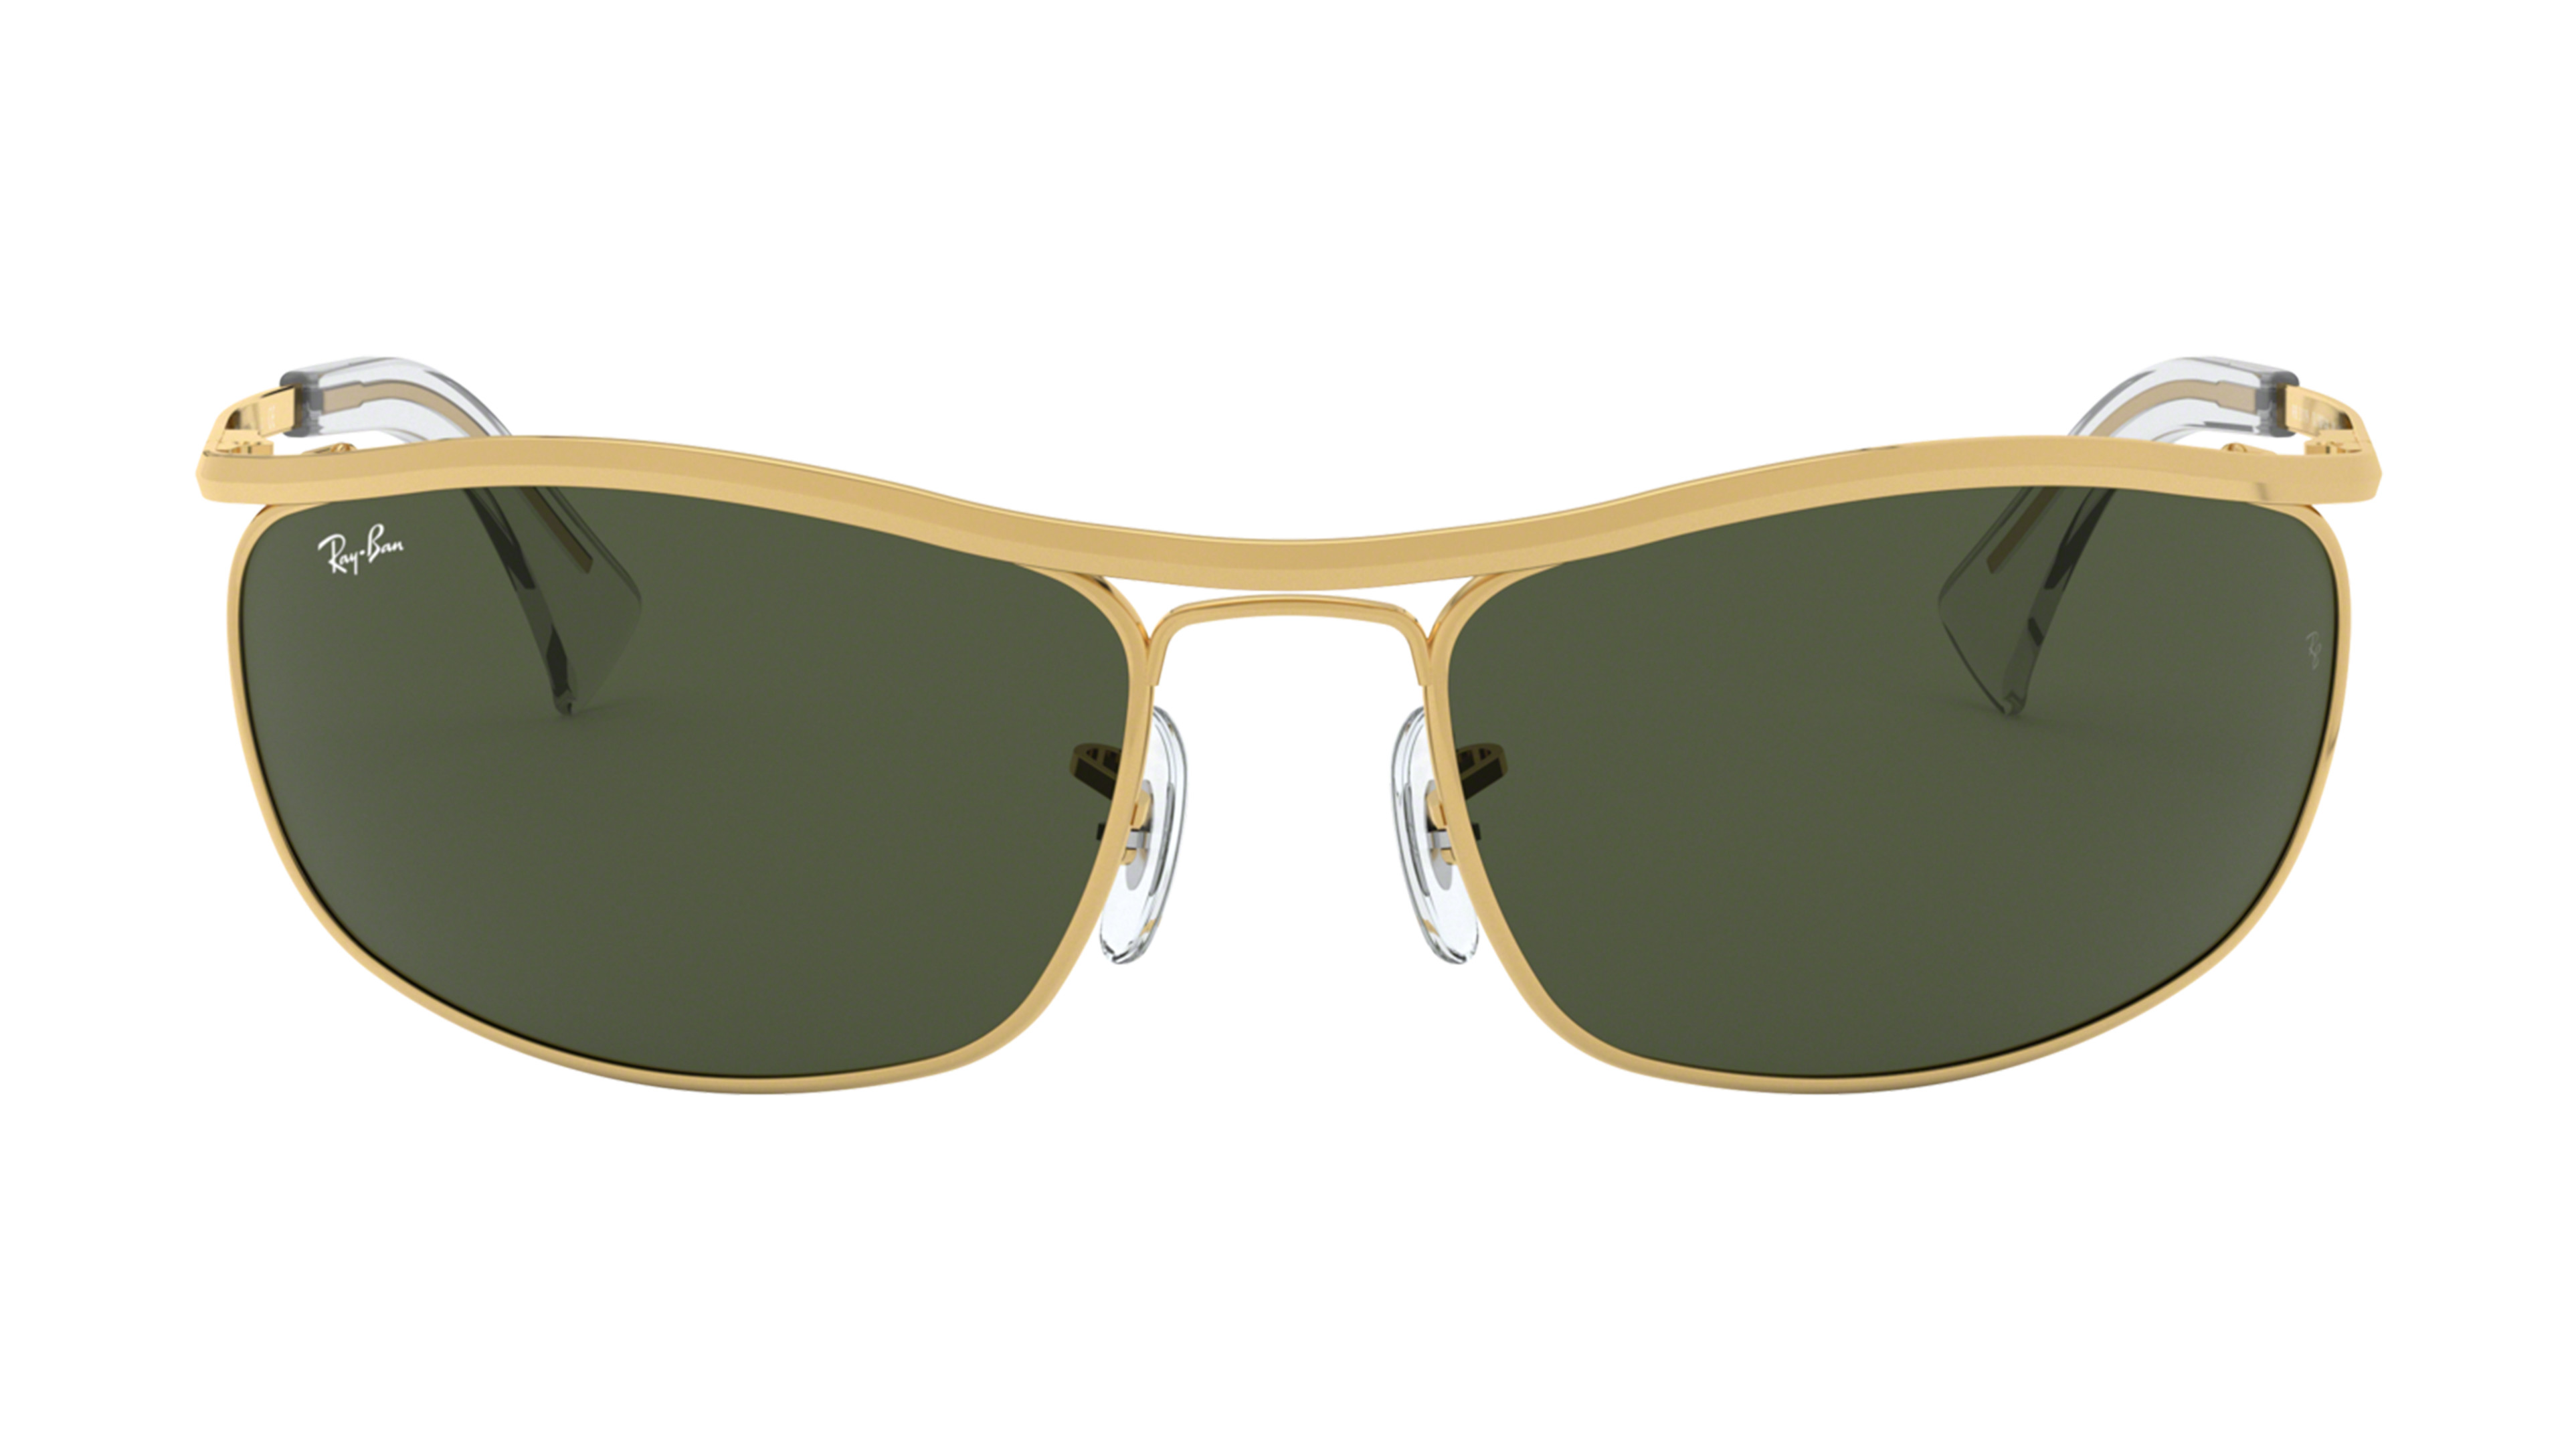 0805289003243-front-Ray-Ban-0RB3119-001-Olympian